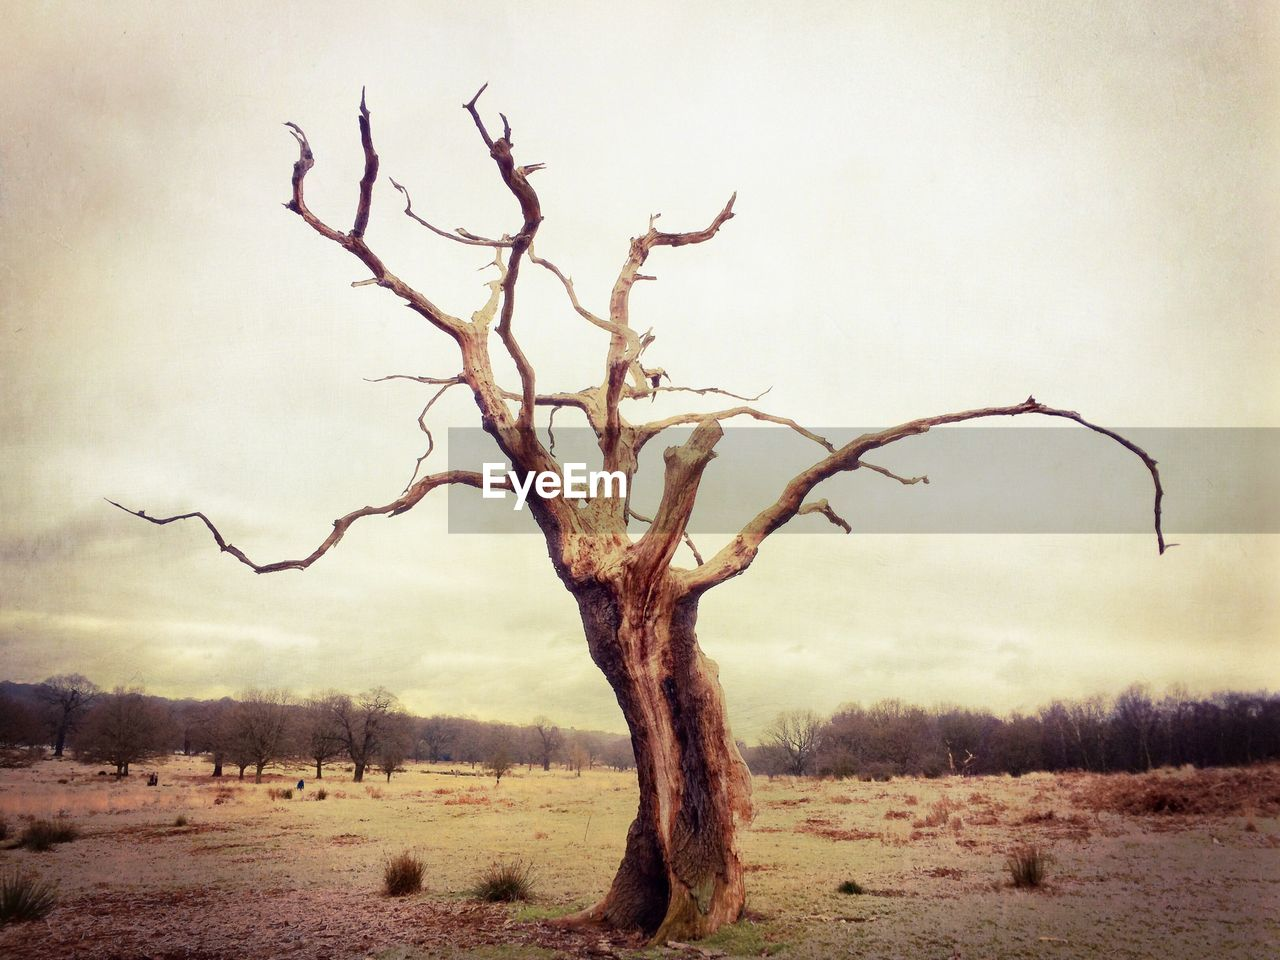 View of bare tree in field against cloudy sky